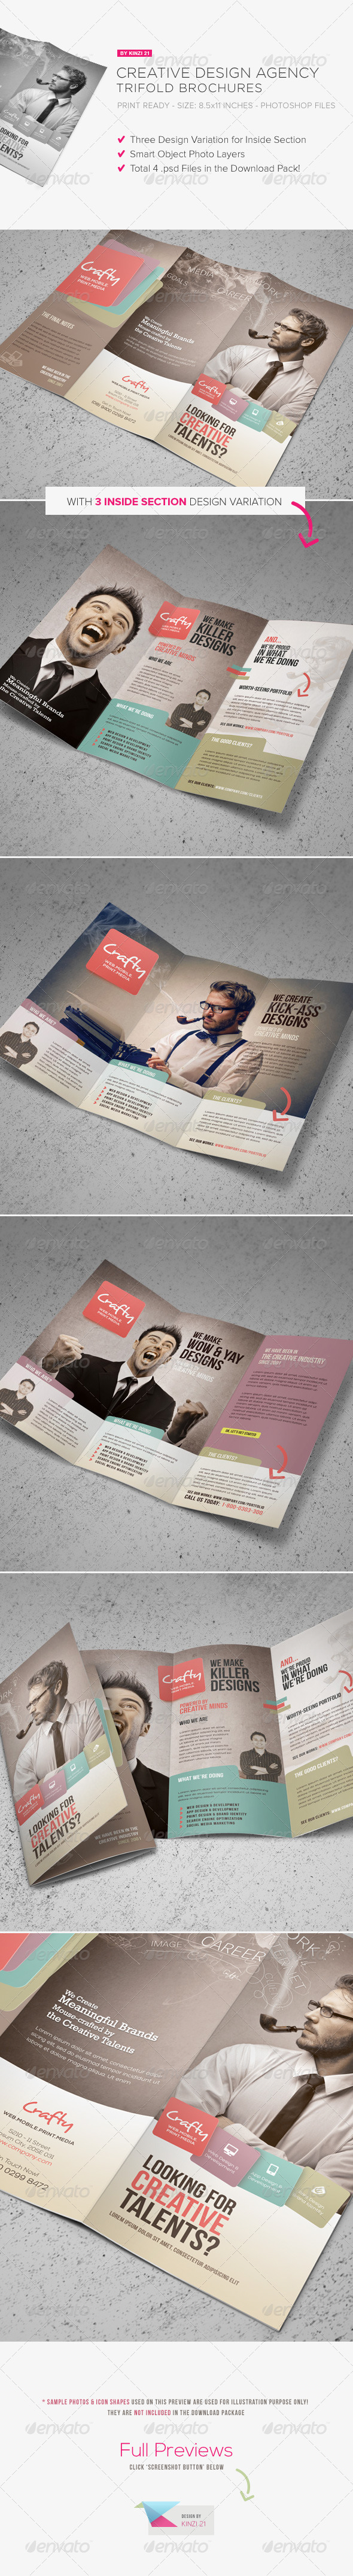 GraphicRiver Creative Design Agency Trifold Brochure 5743041